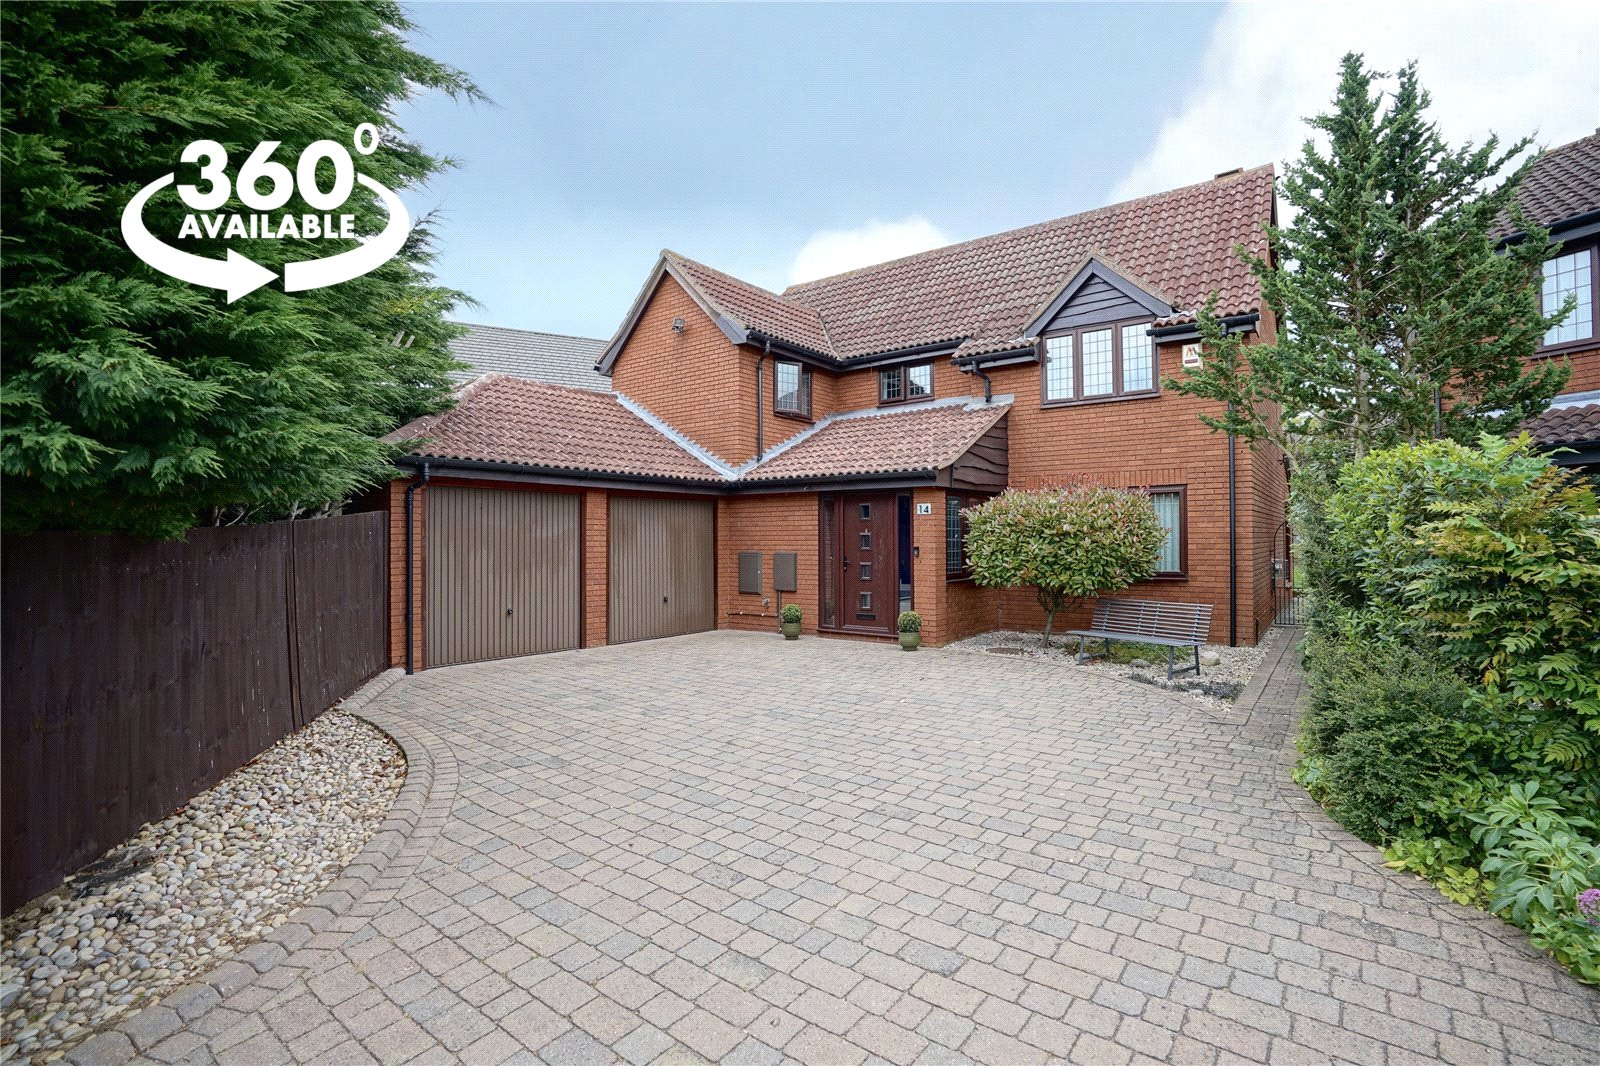 4 bed house for sale in Teversham Way, Eaton Ford  - Property Image 1